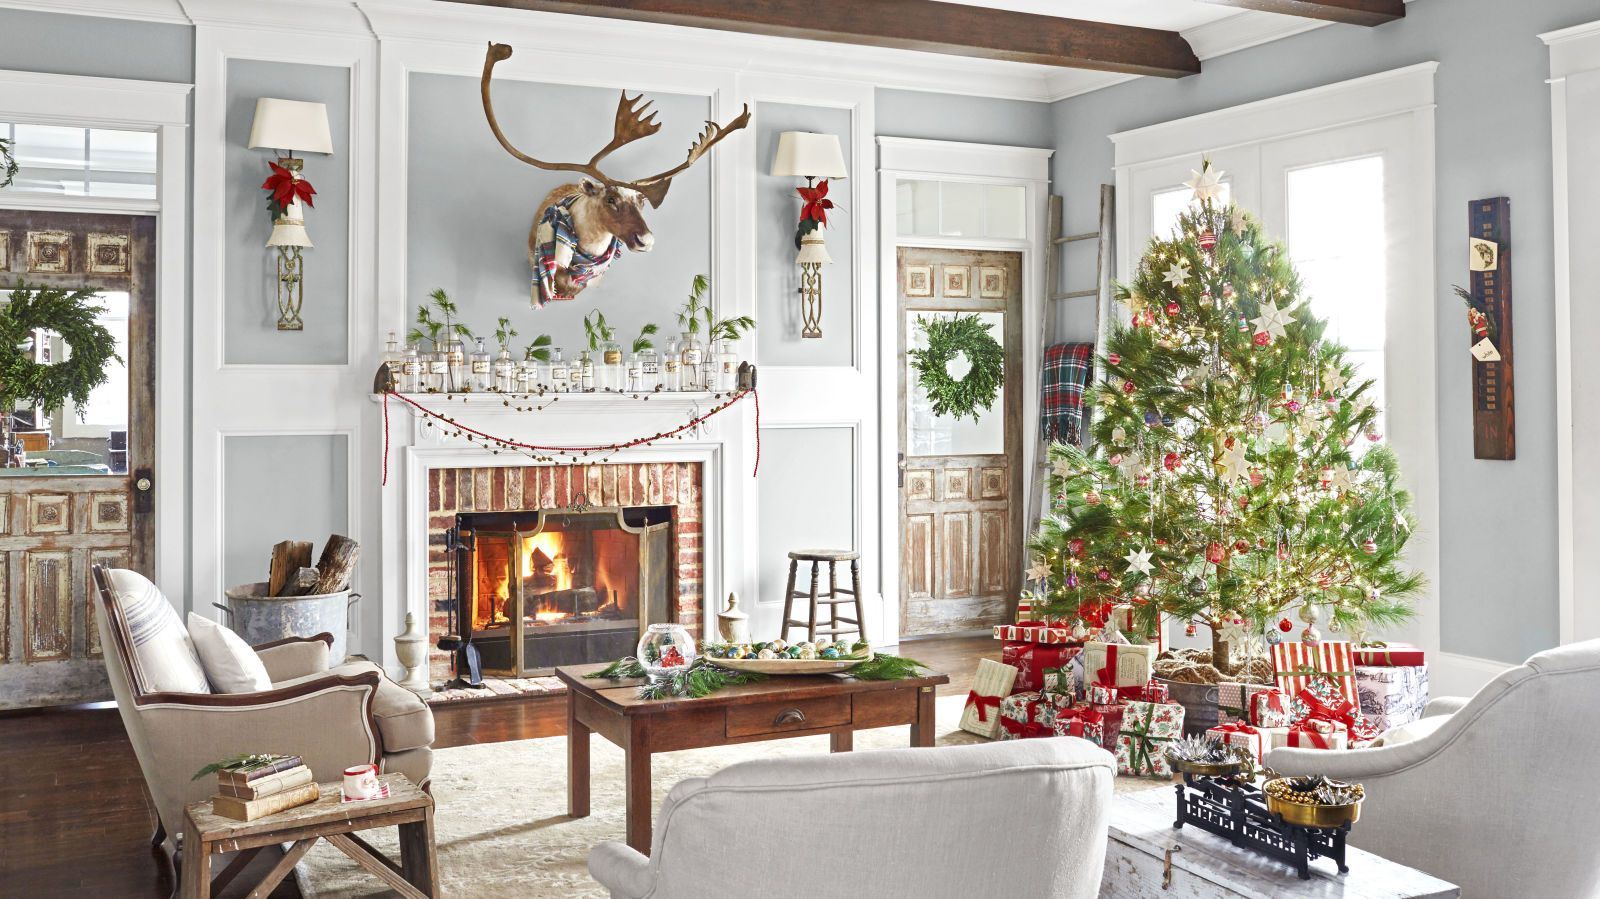 Inside A Tennessee Christmas Home Decked Out With Vintage Decor